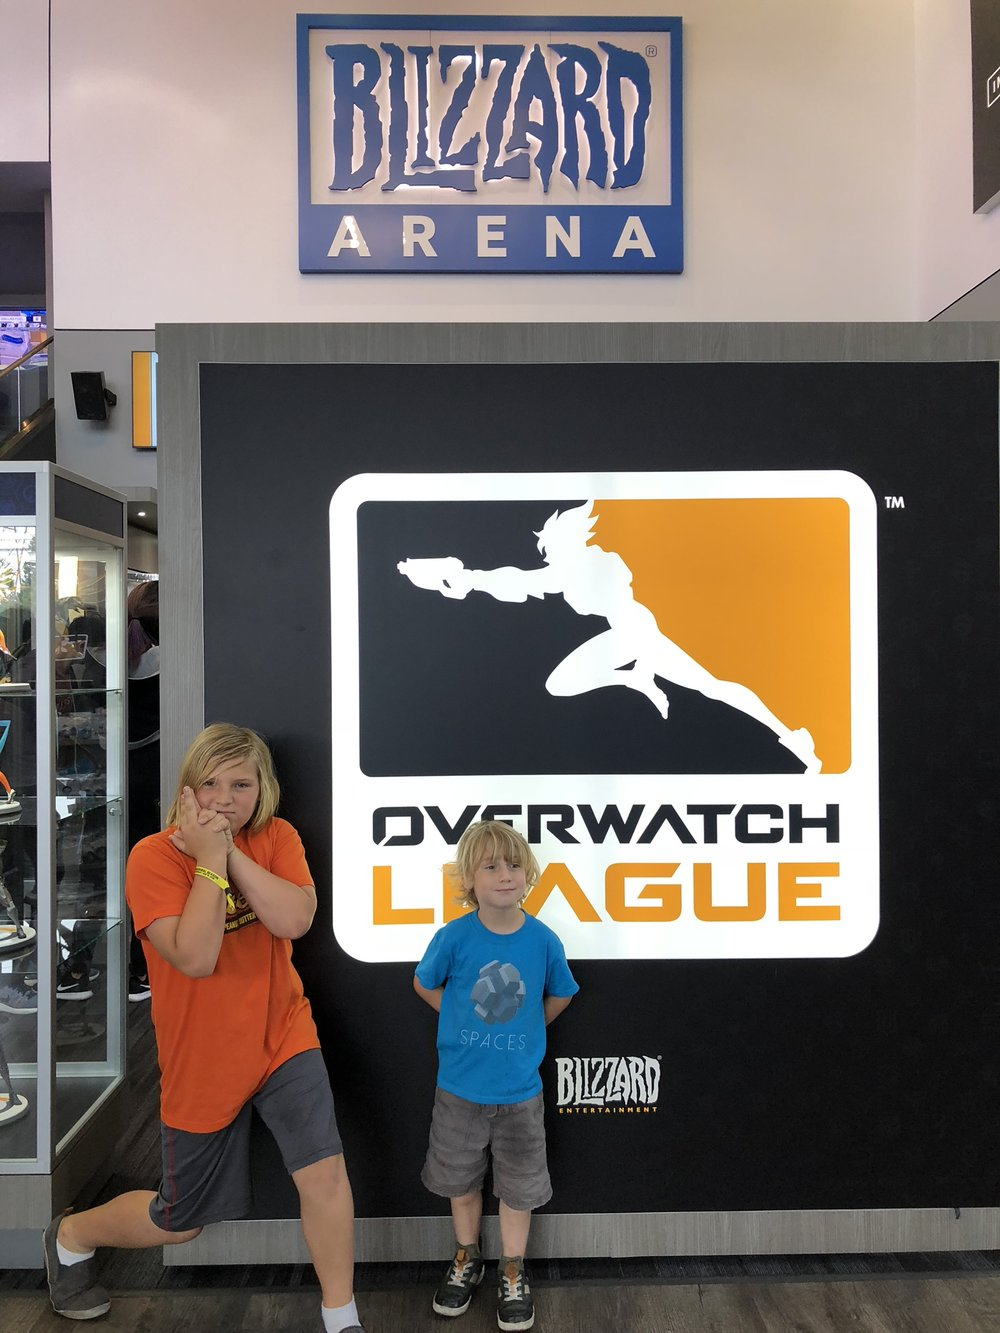 eSports is even better in person, you can see Overwatch live in Burbank, CA